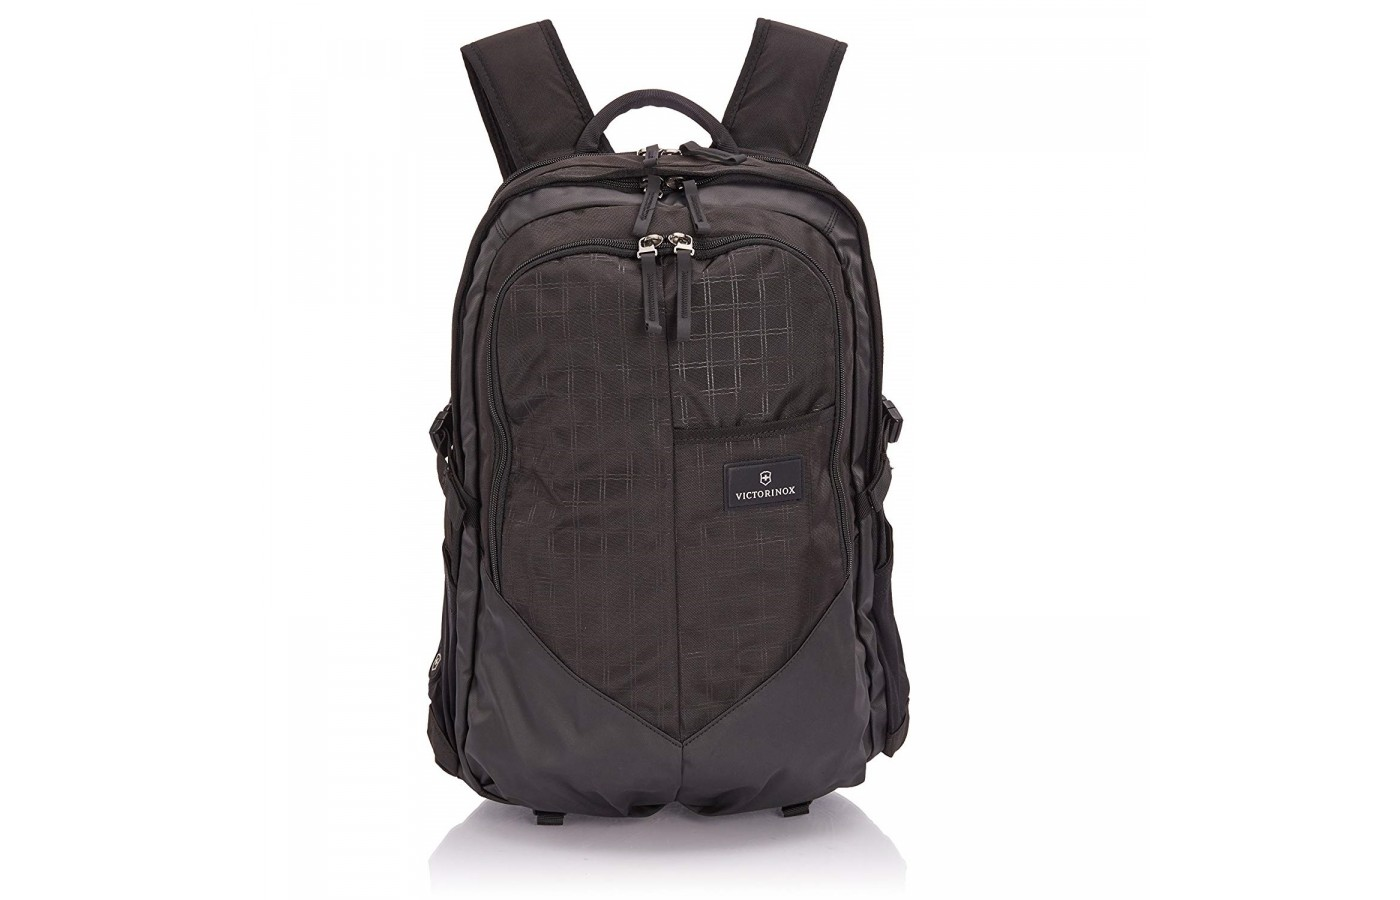 The Victorinox Backpack offers fabric with abrasion-resistance for better durability.